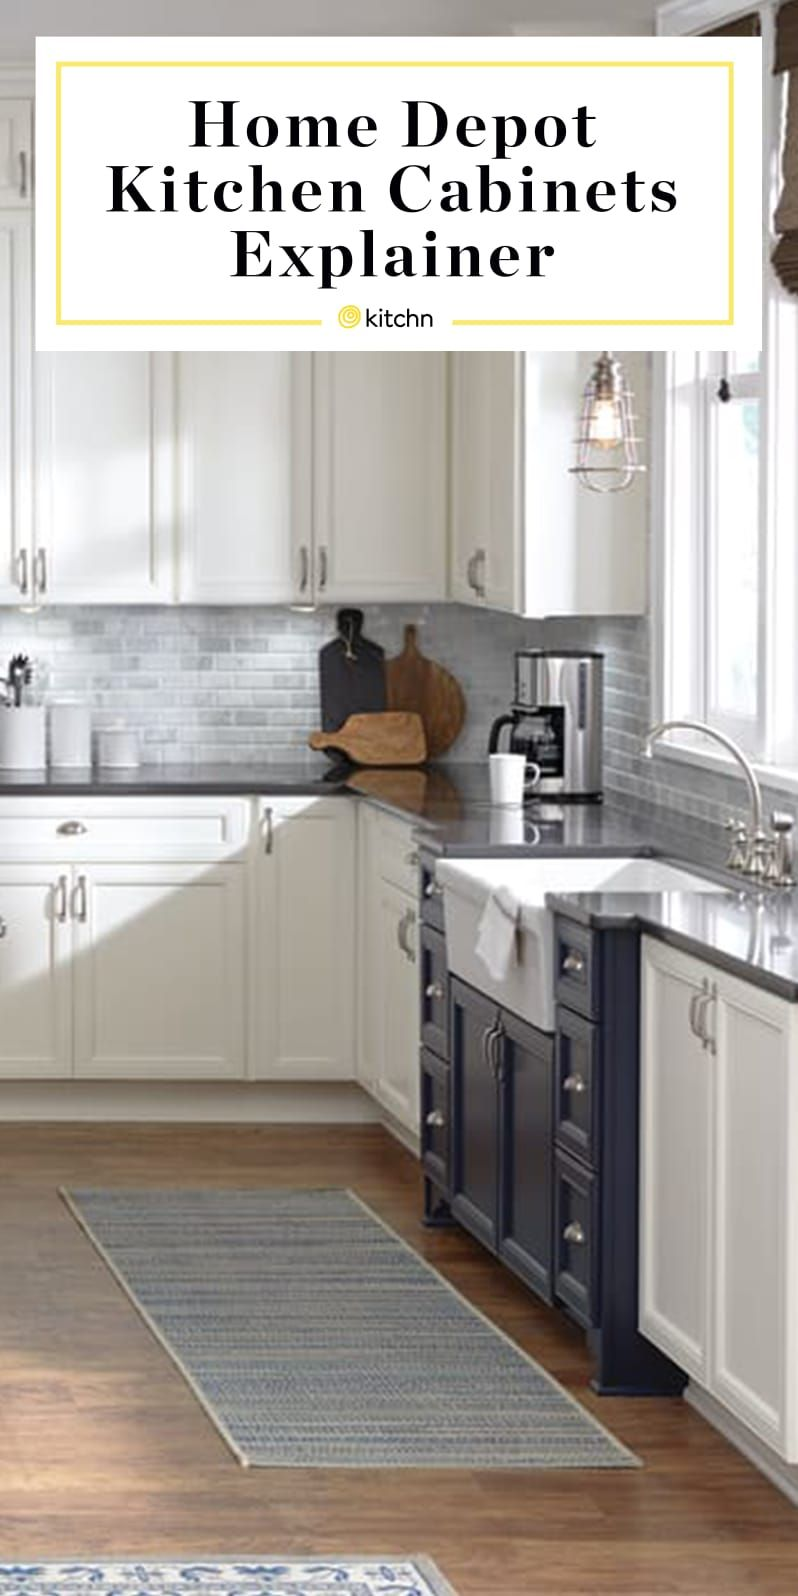 Everything You Need To Know About Home Depot Kitchen Cabinets In 2020 Home Depot Kitchen Kitchen Cabinets Home Depot Cheap Kitchen Cabinets